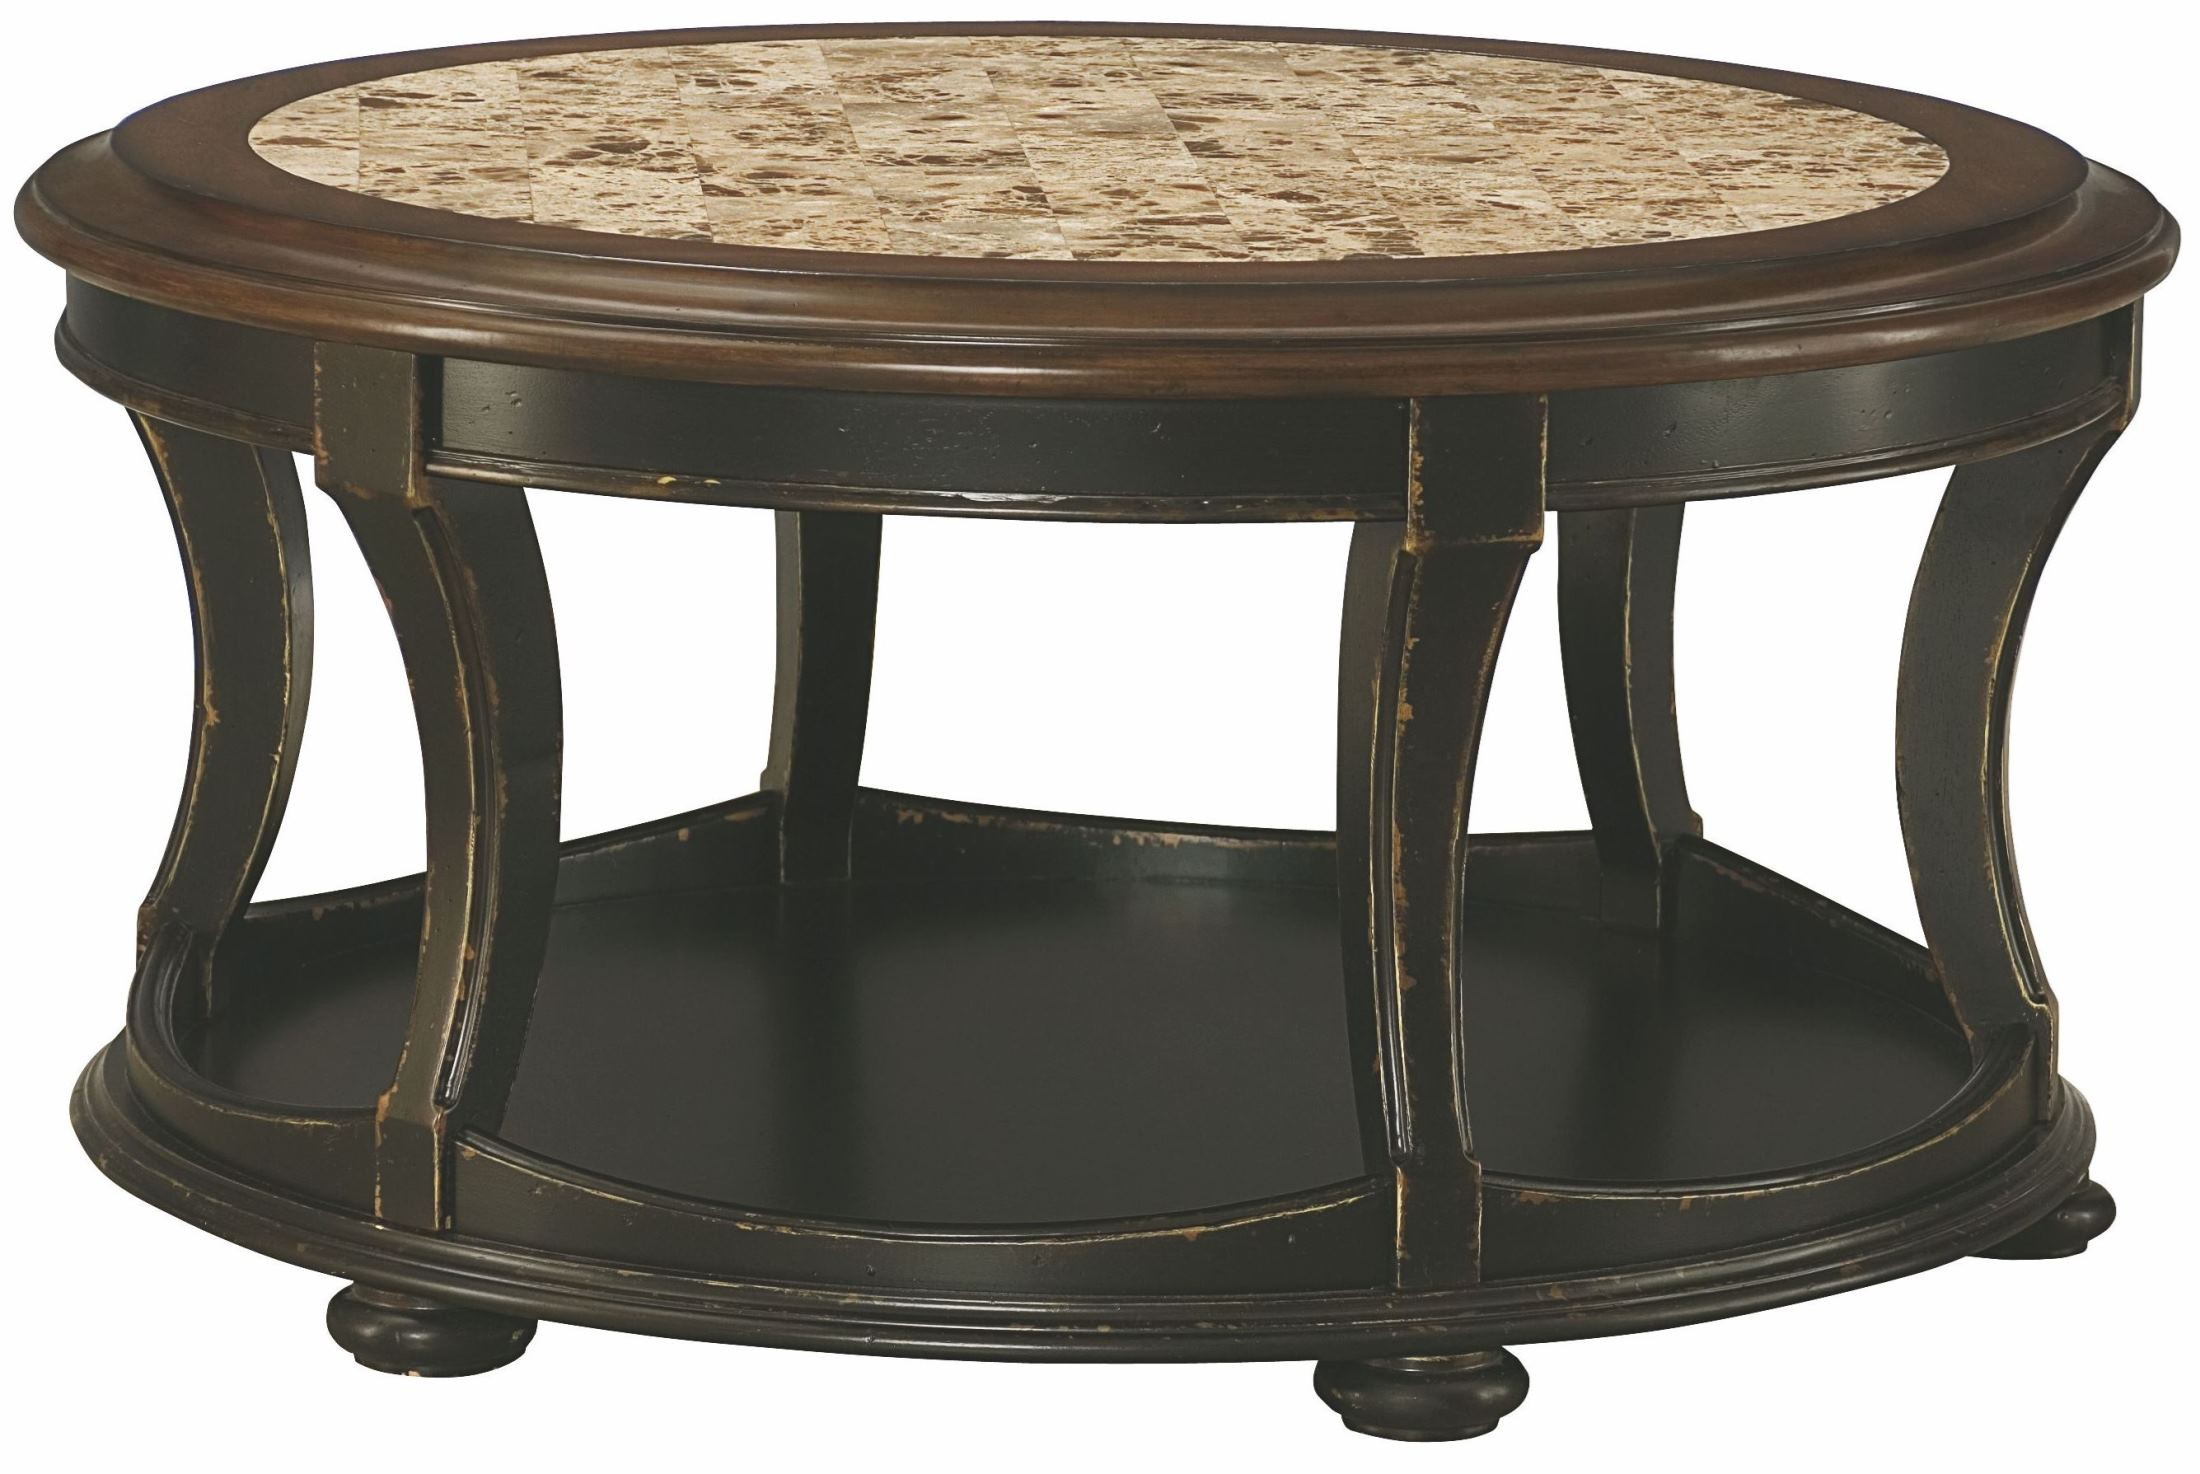 Dorset Round Occasional Table Set From Hammary 347 911